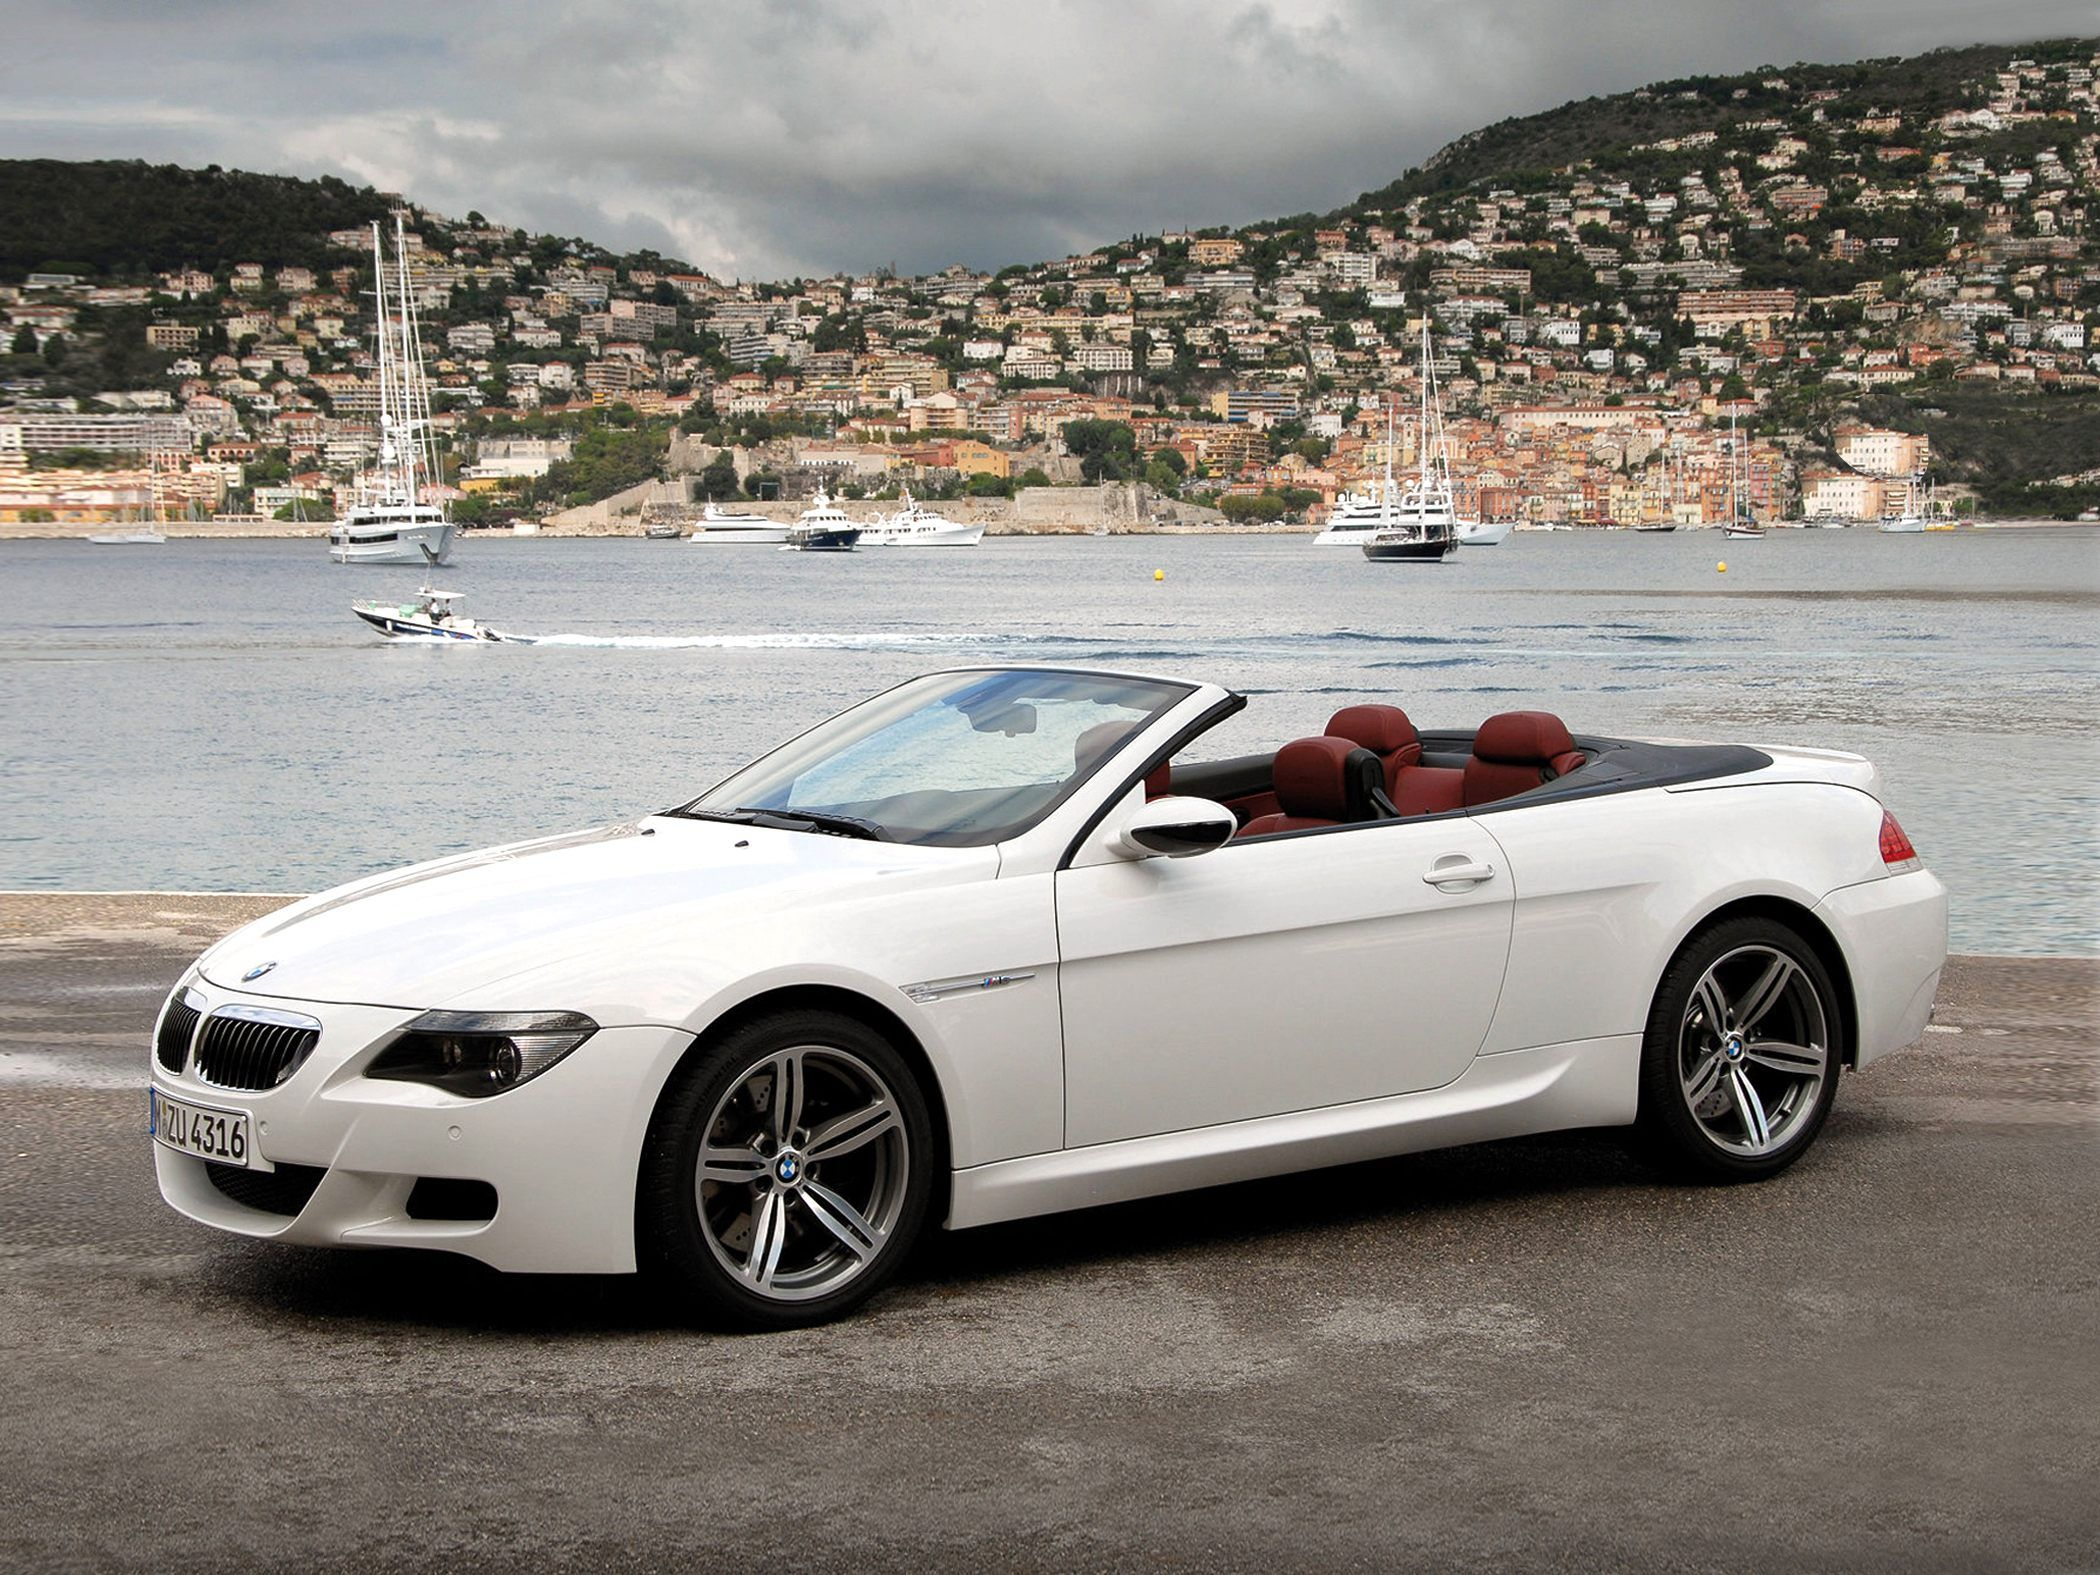 Own a BMW M6 convertible.